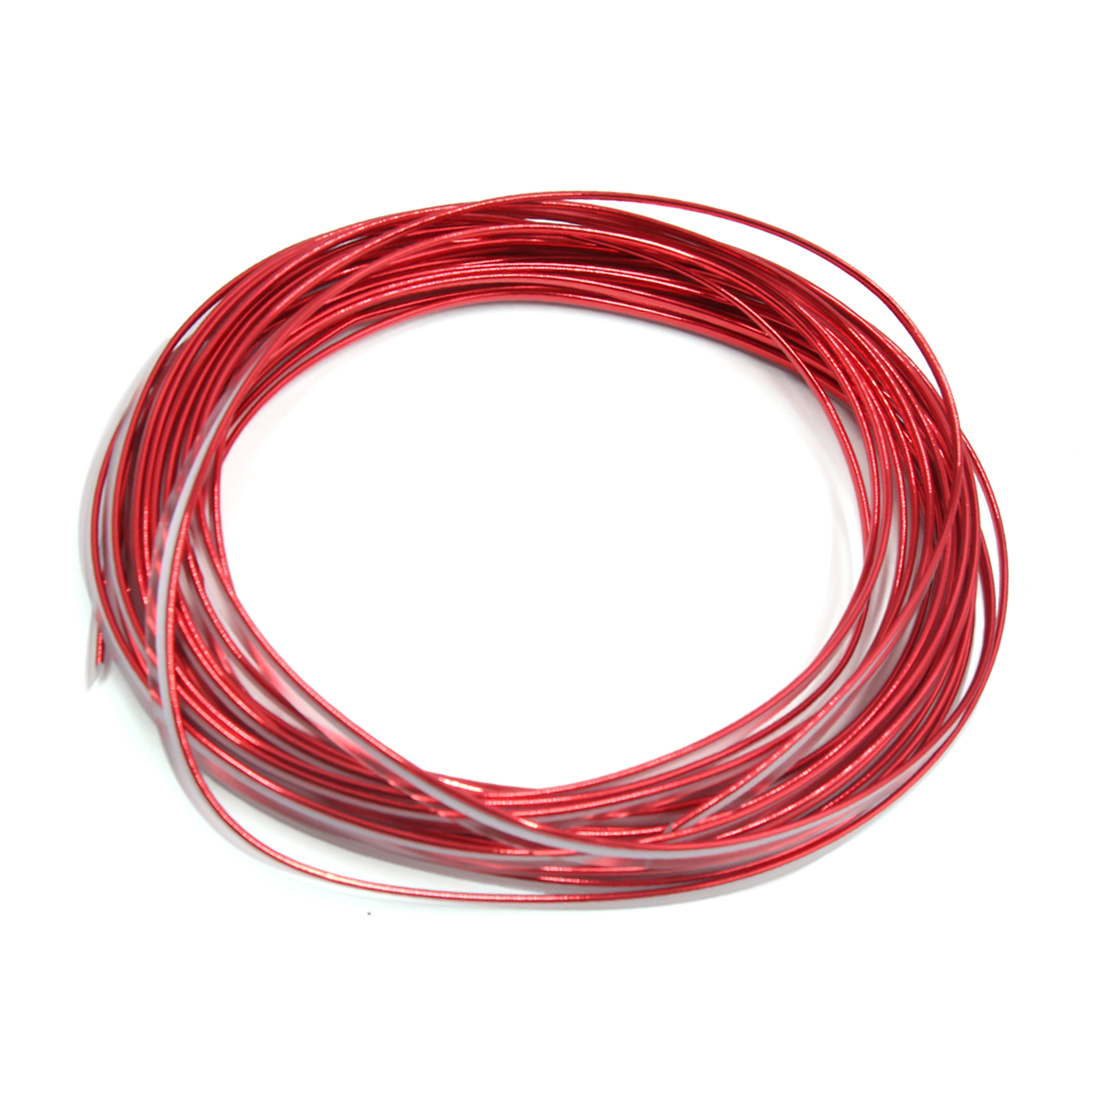 Bright Red Car Interior Exterior Decoration Moulding Trim Strip Line 10M Lenght